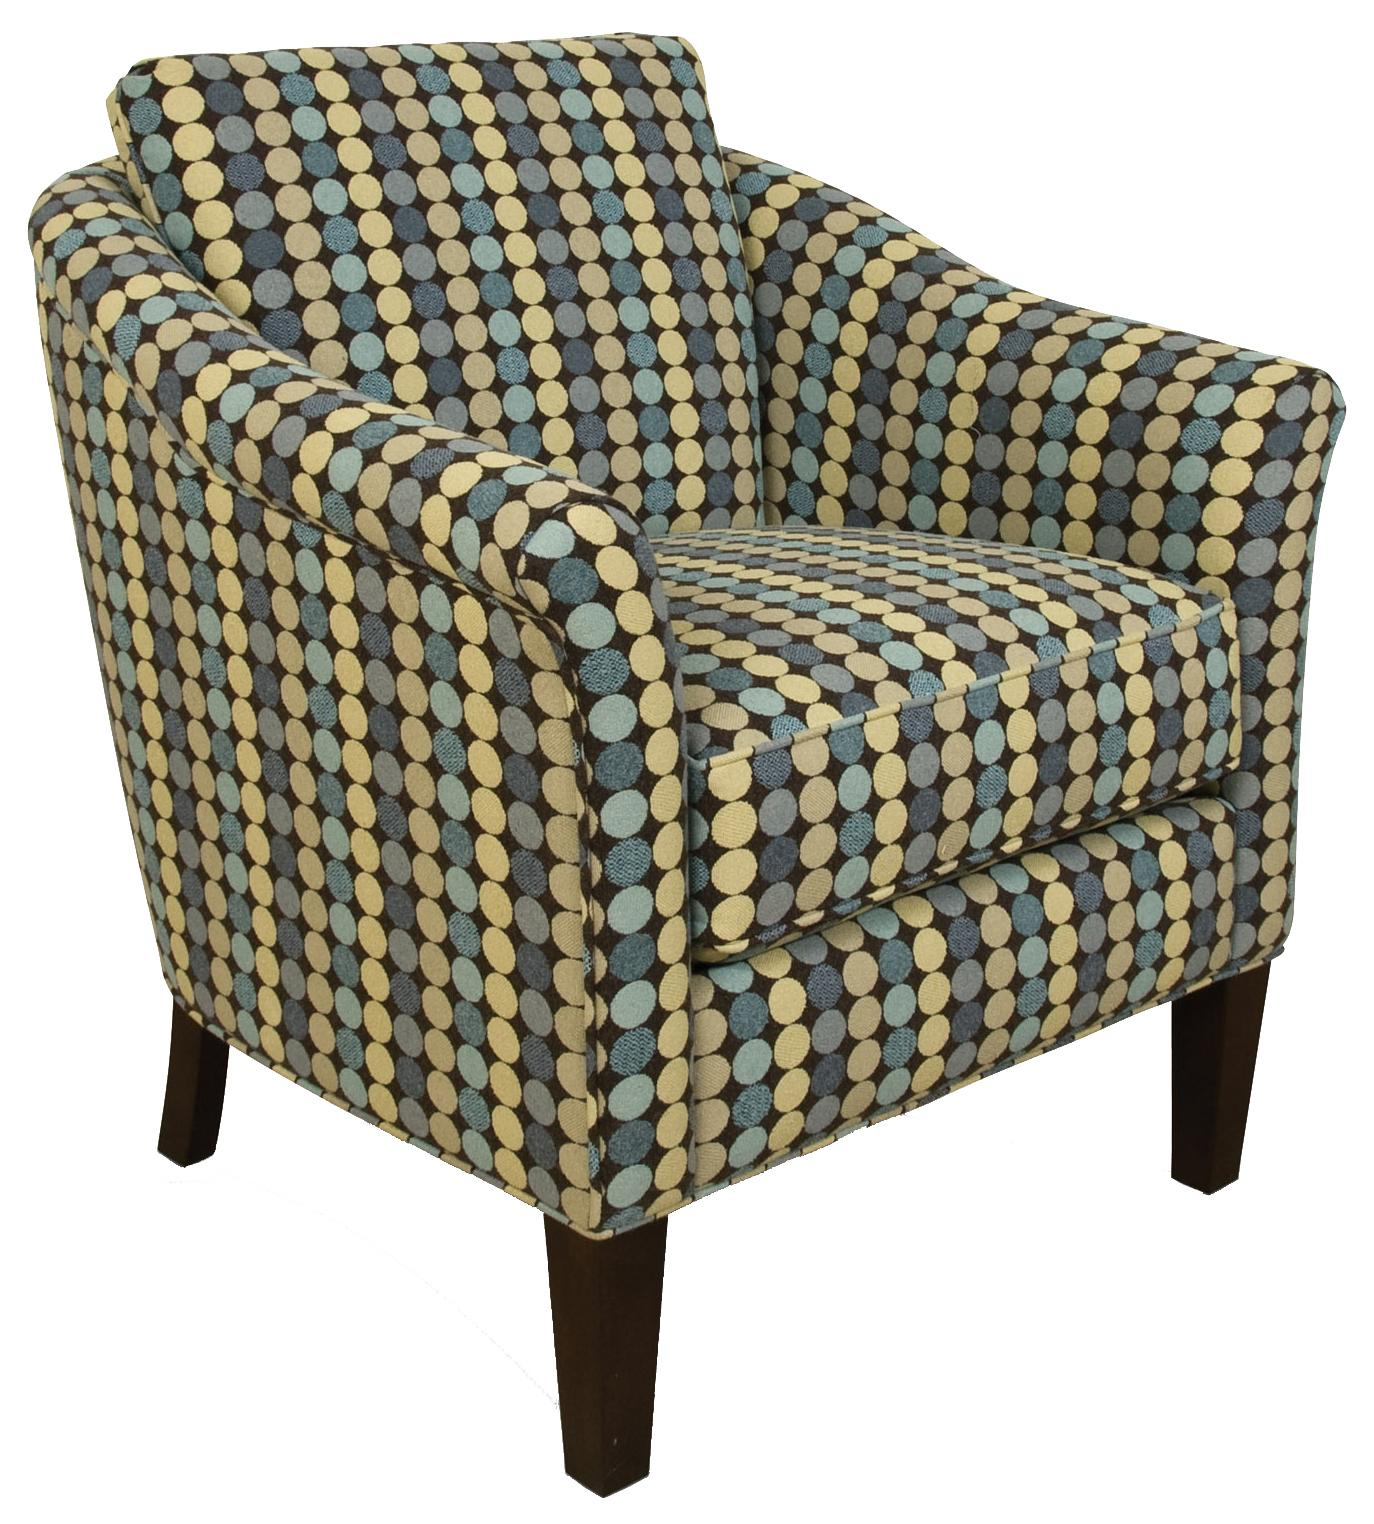 England Denise 1554 Chic Accent Chair With Cosmopolitan